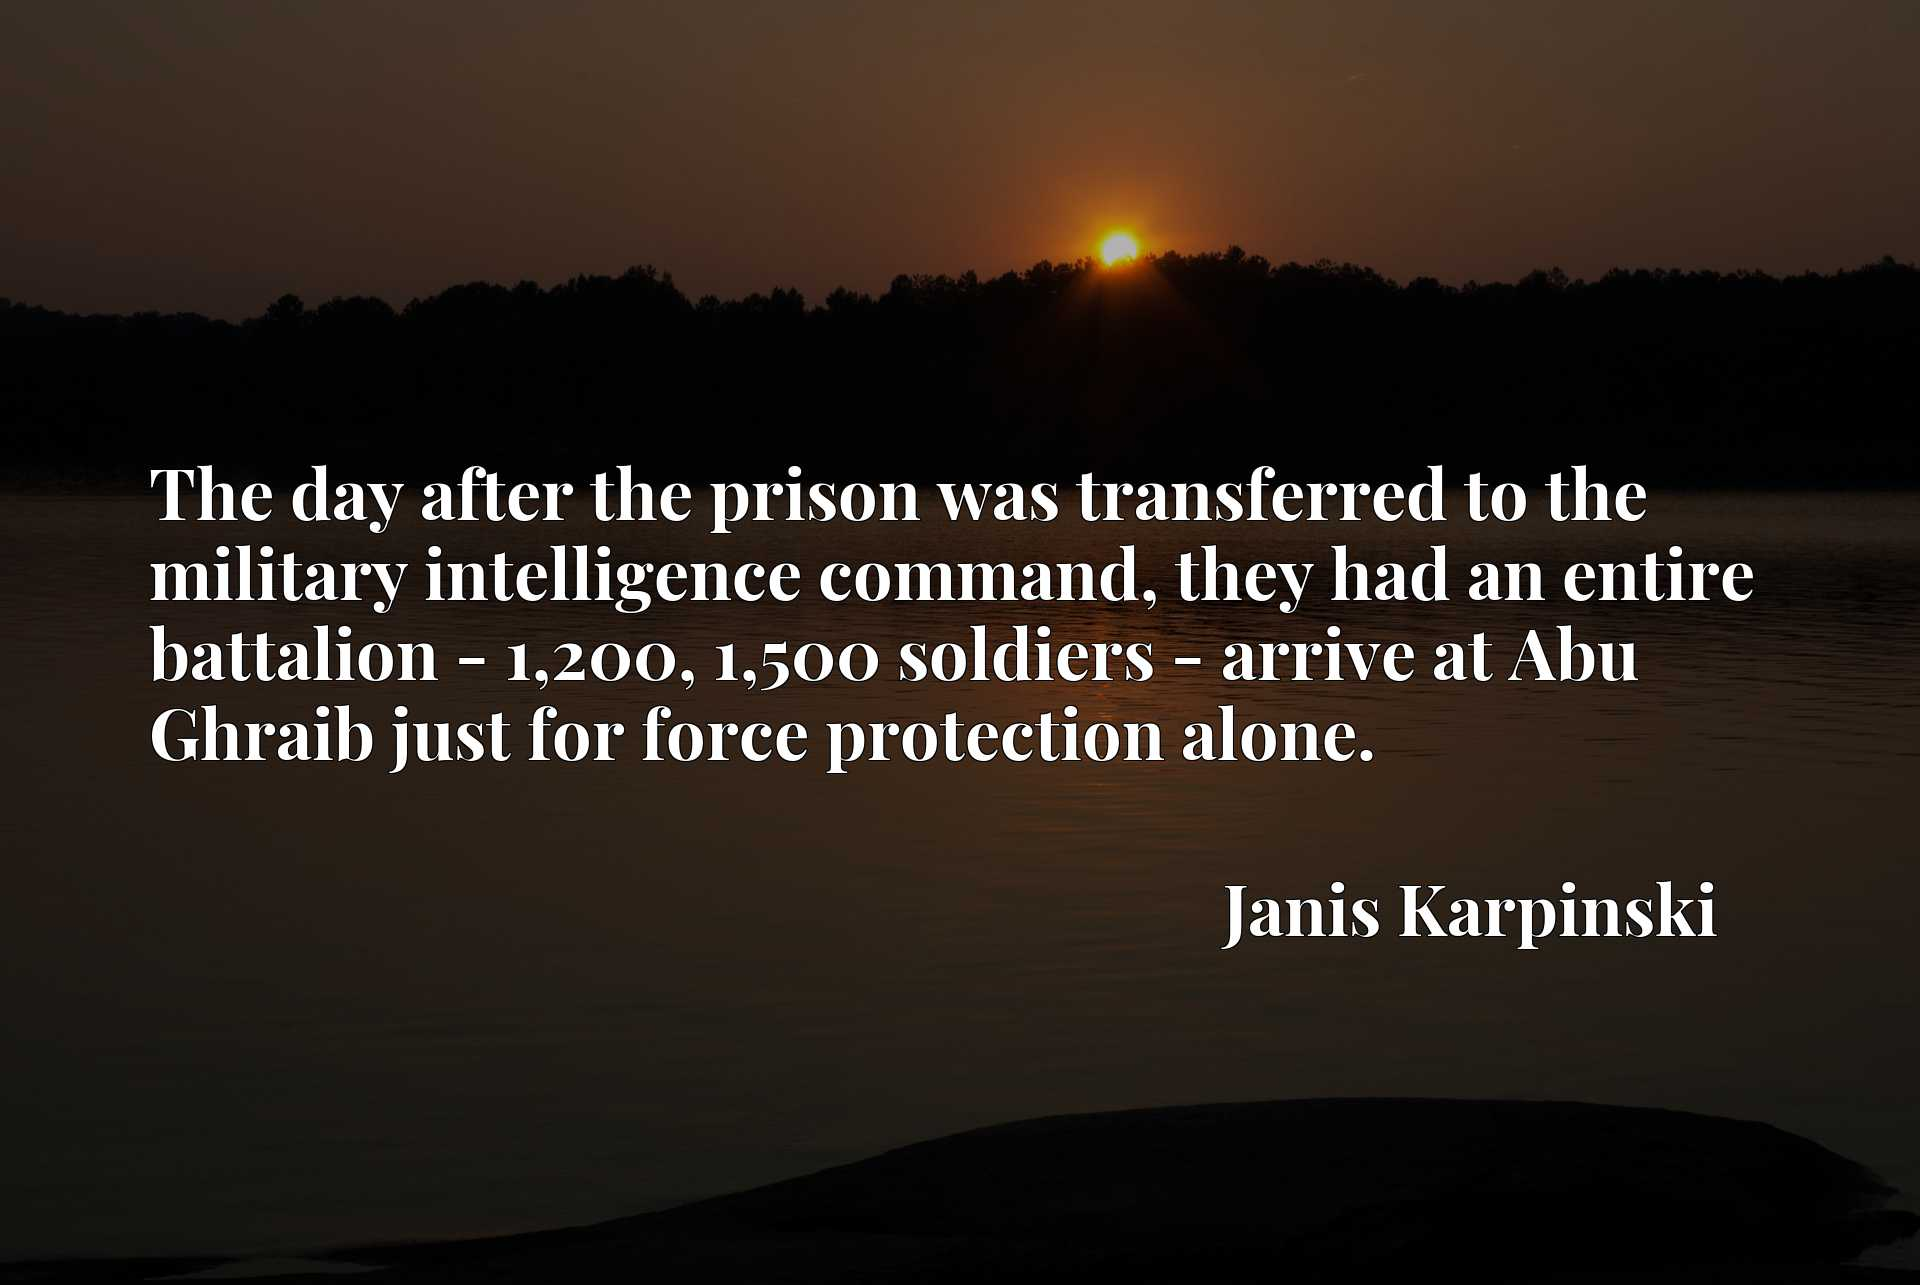 The day after the prison was transferred to the military intelligence command, they had an entire battalion - 1,200, 1,500 soldiers - arrive at Abu Ghraib just for force protection alone.